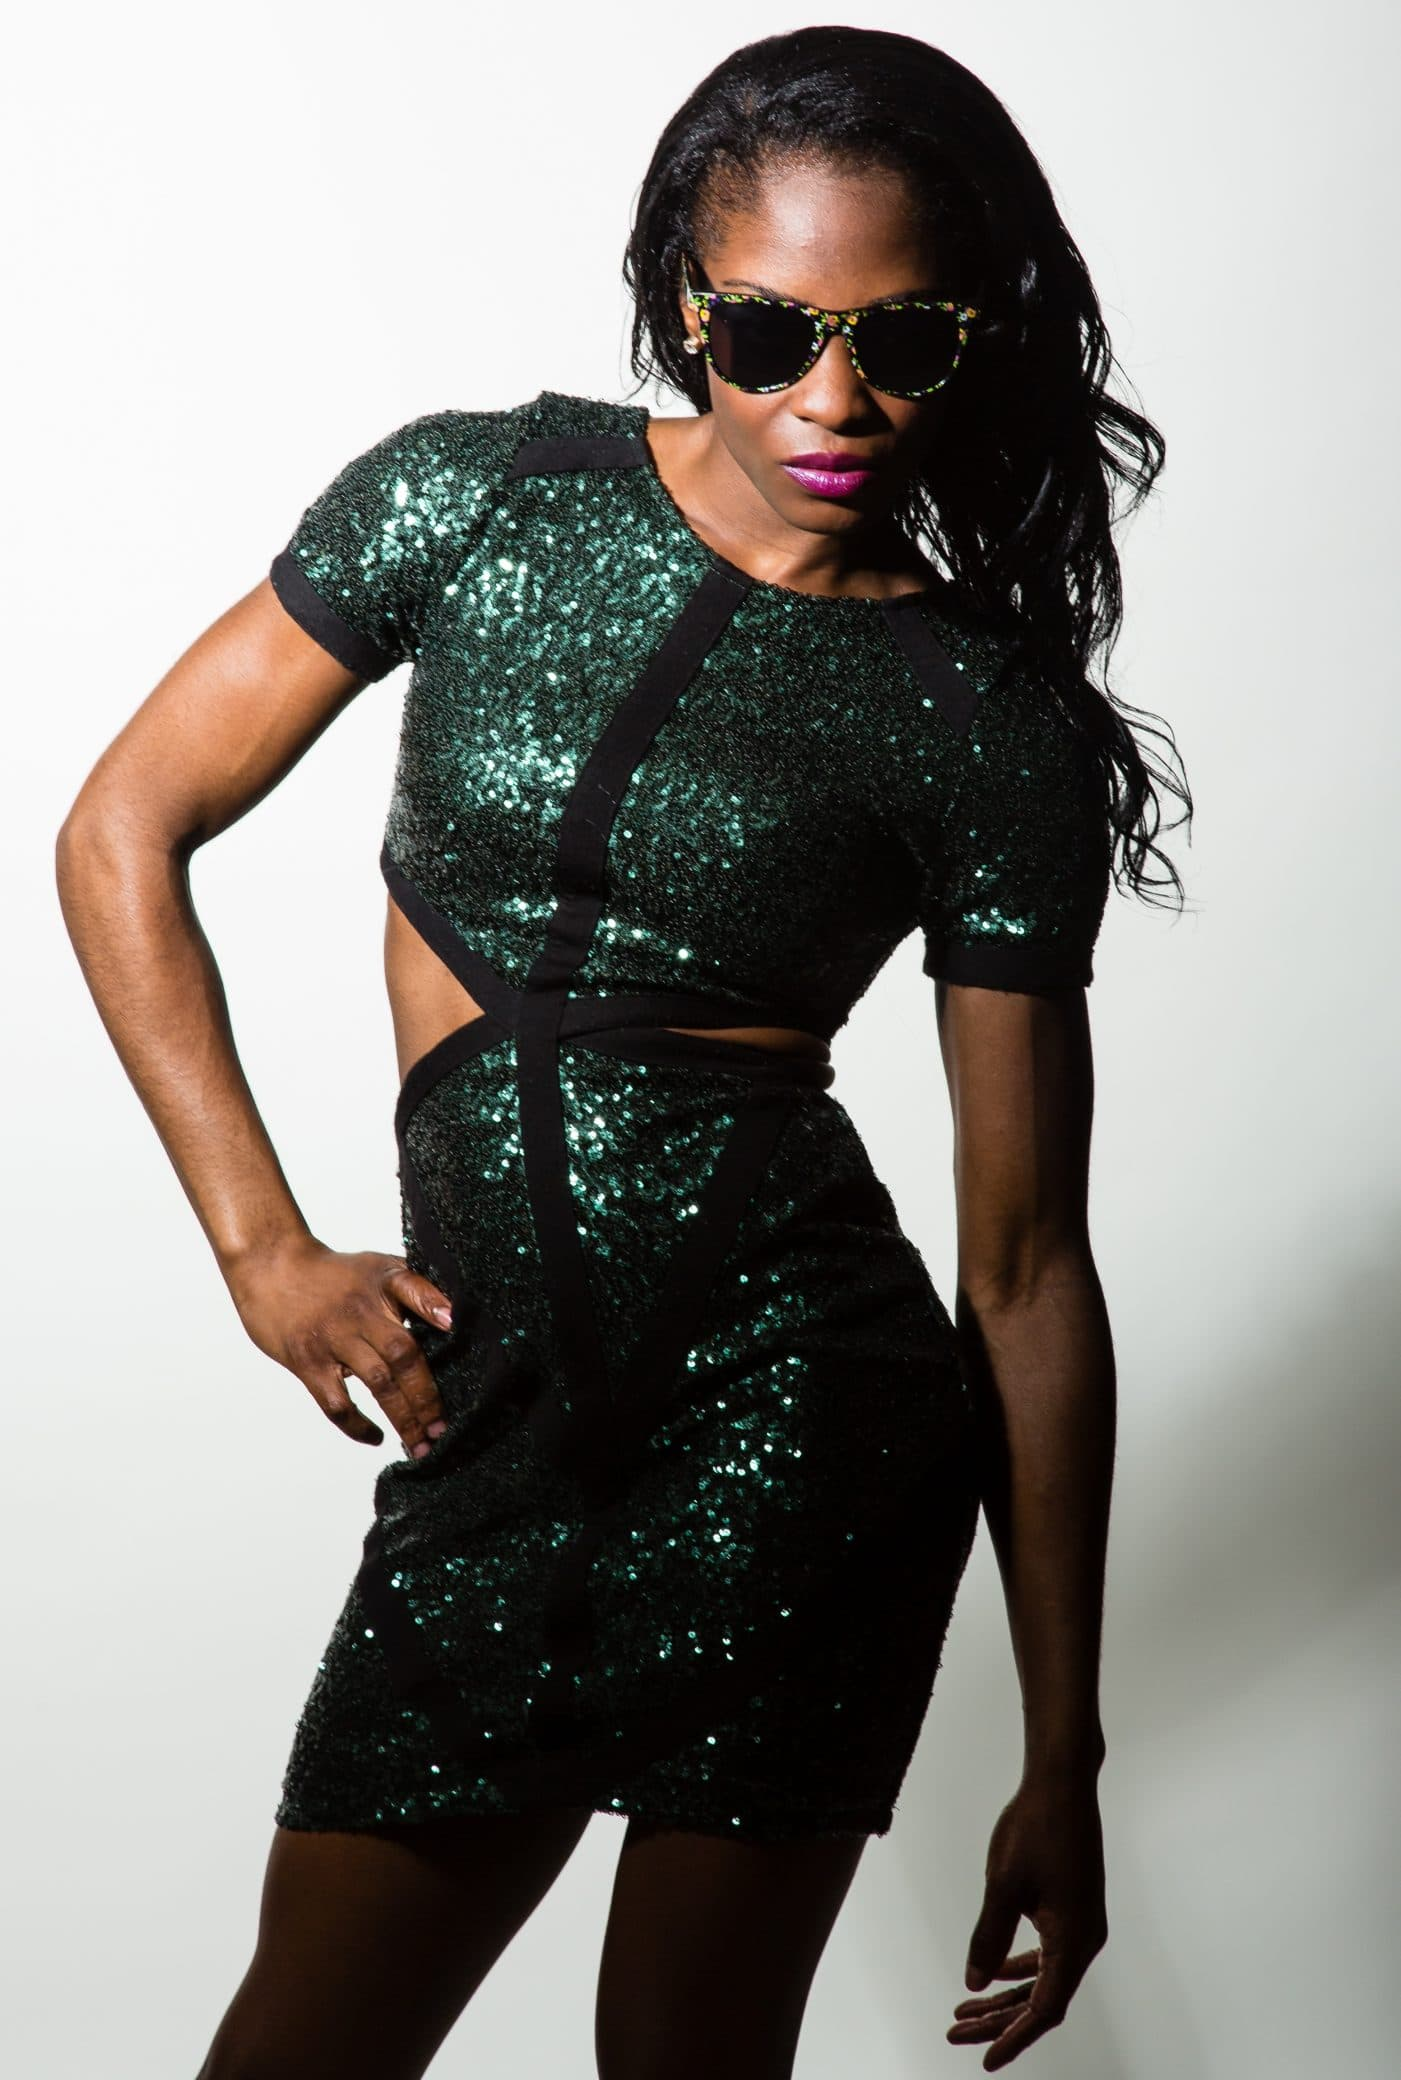 Beautiful black woman wearing a sparkling green dress opened on each side for a studio photoshoot with one hand on her waist